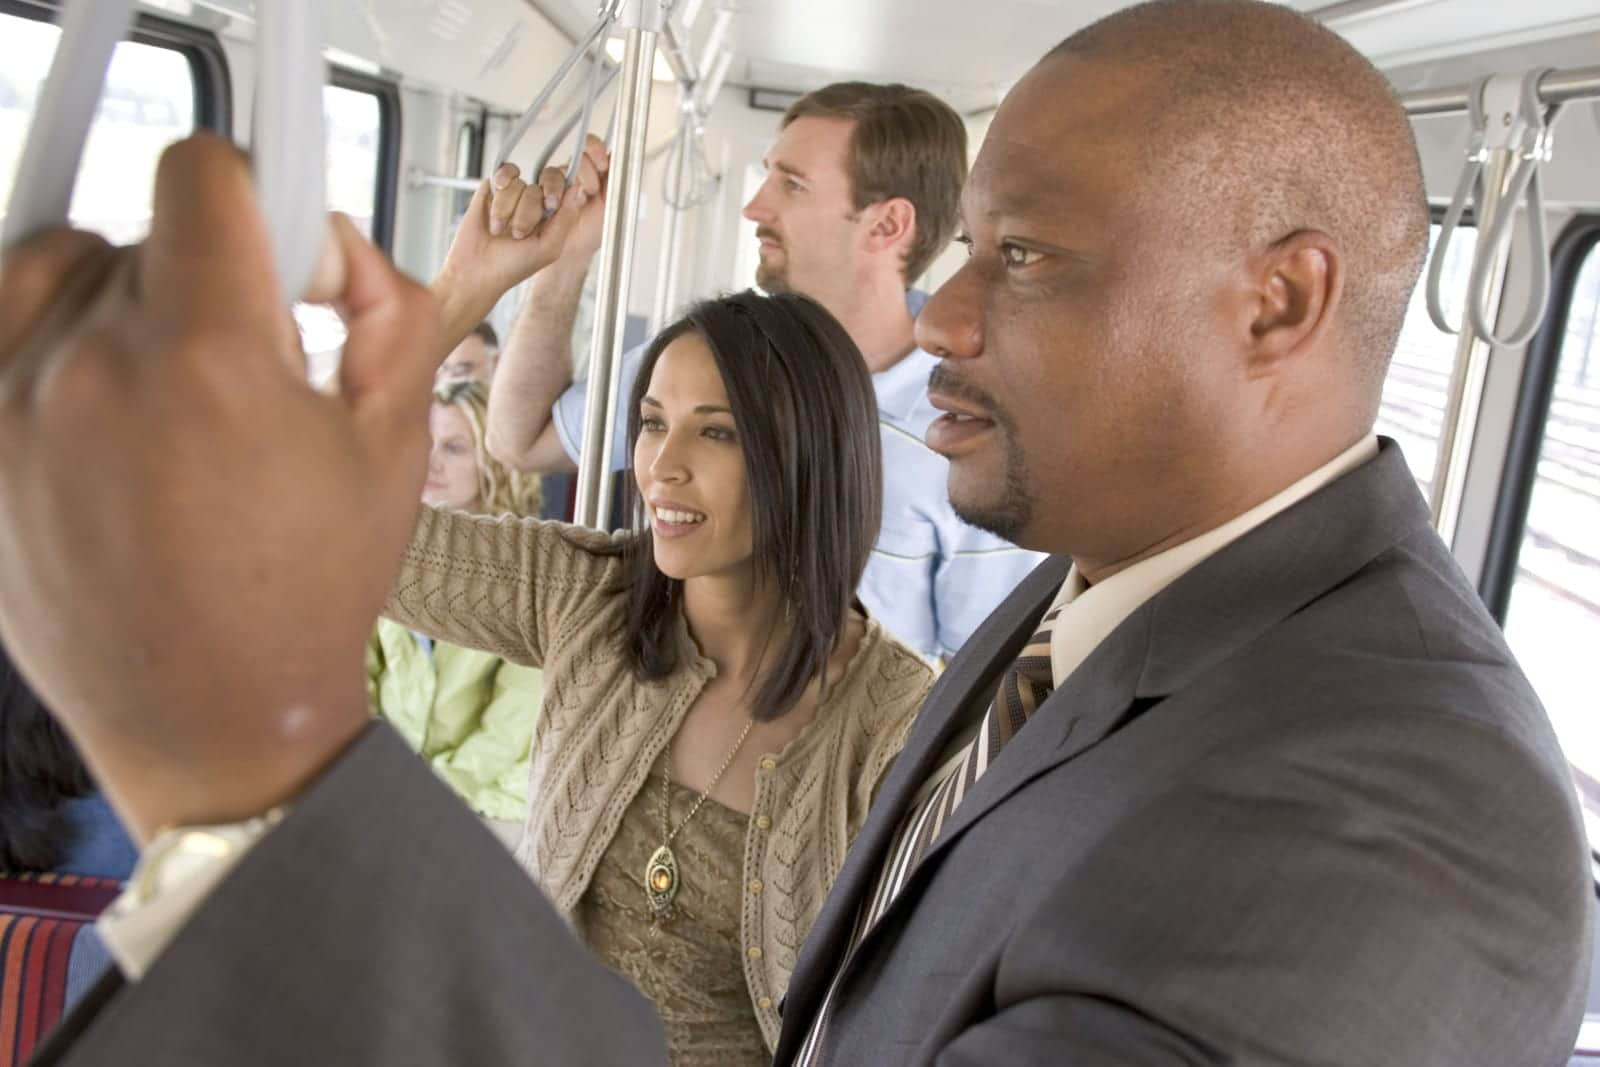 RTD Train Light Rail Passengers On-Board